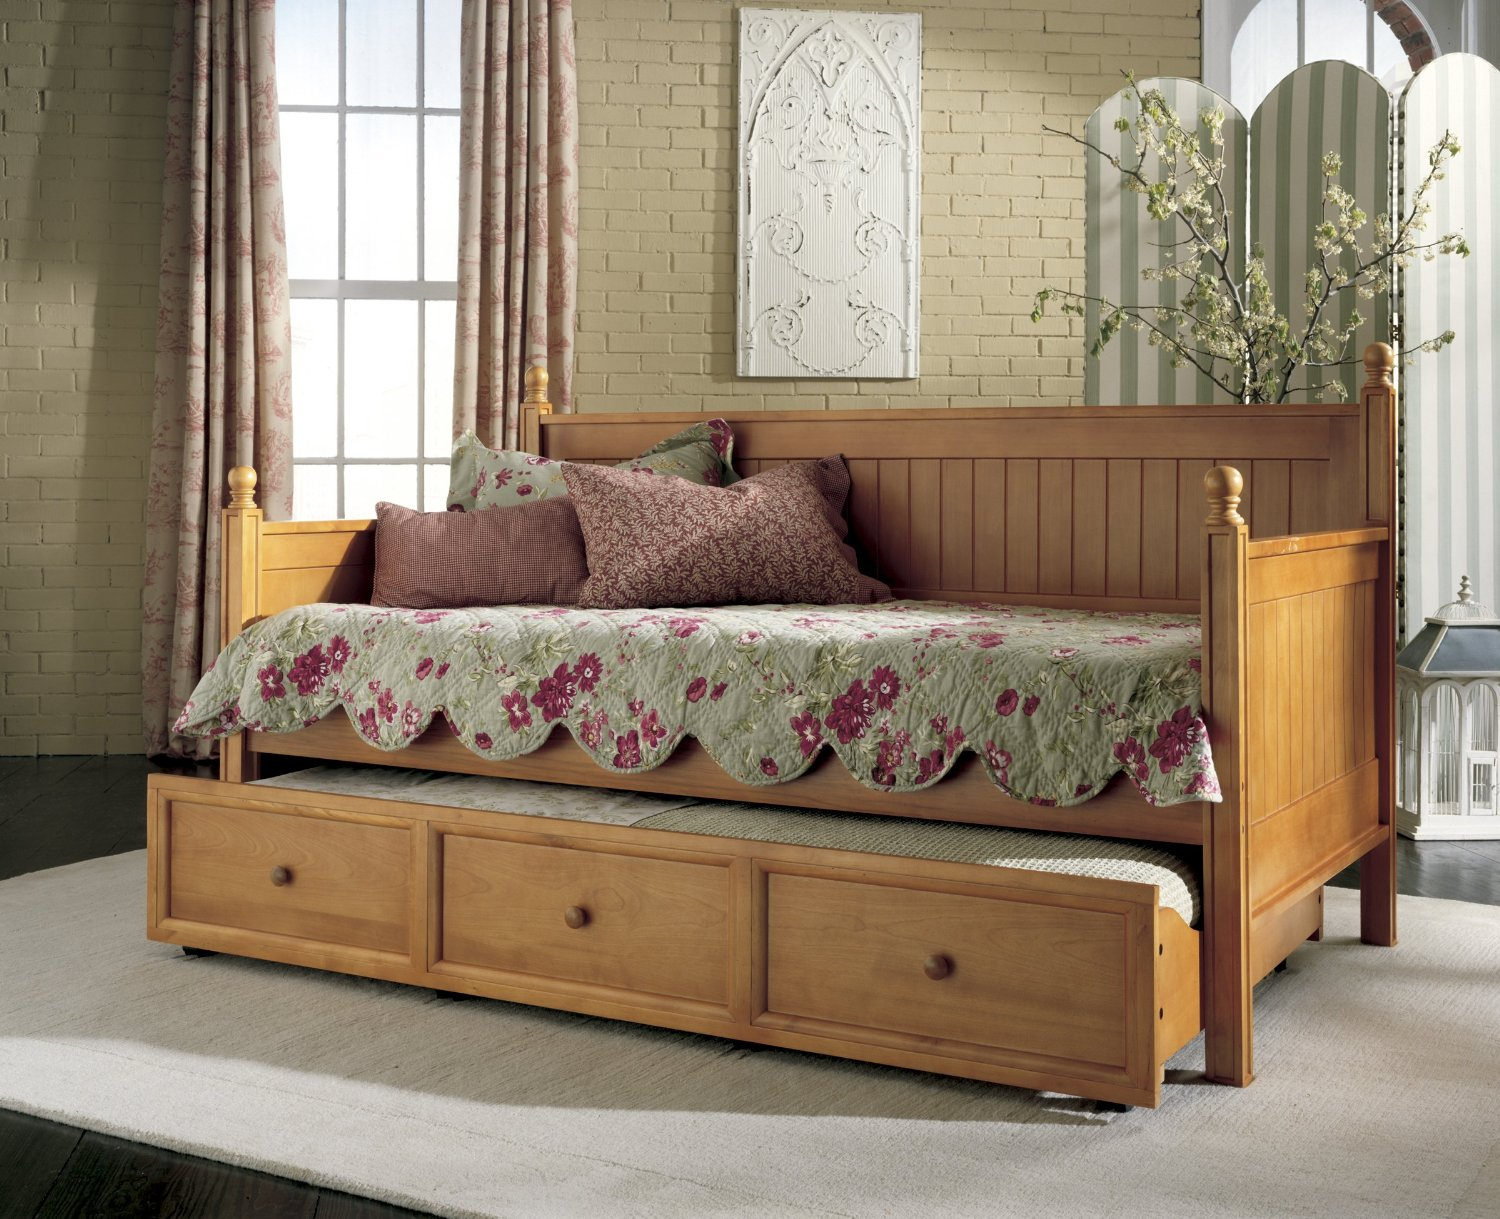 Daybed With Trundle Wooden Base